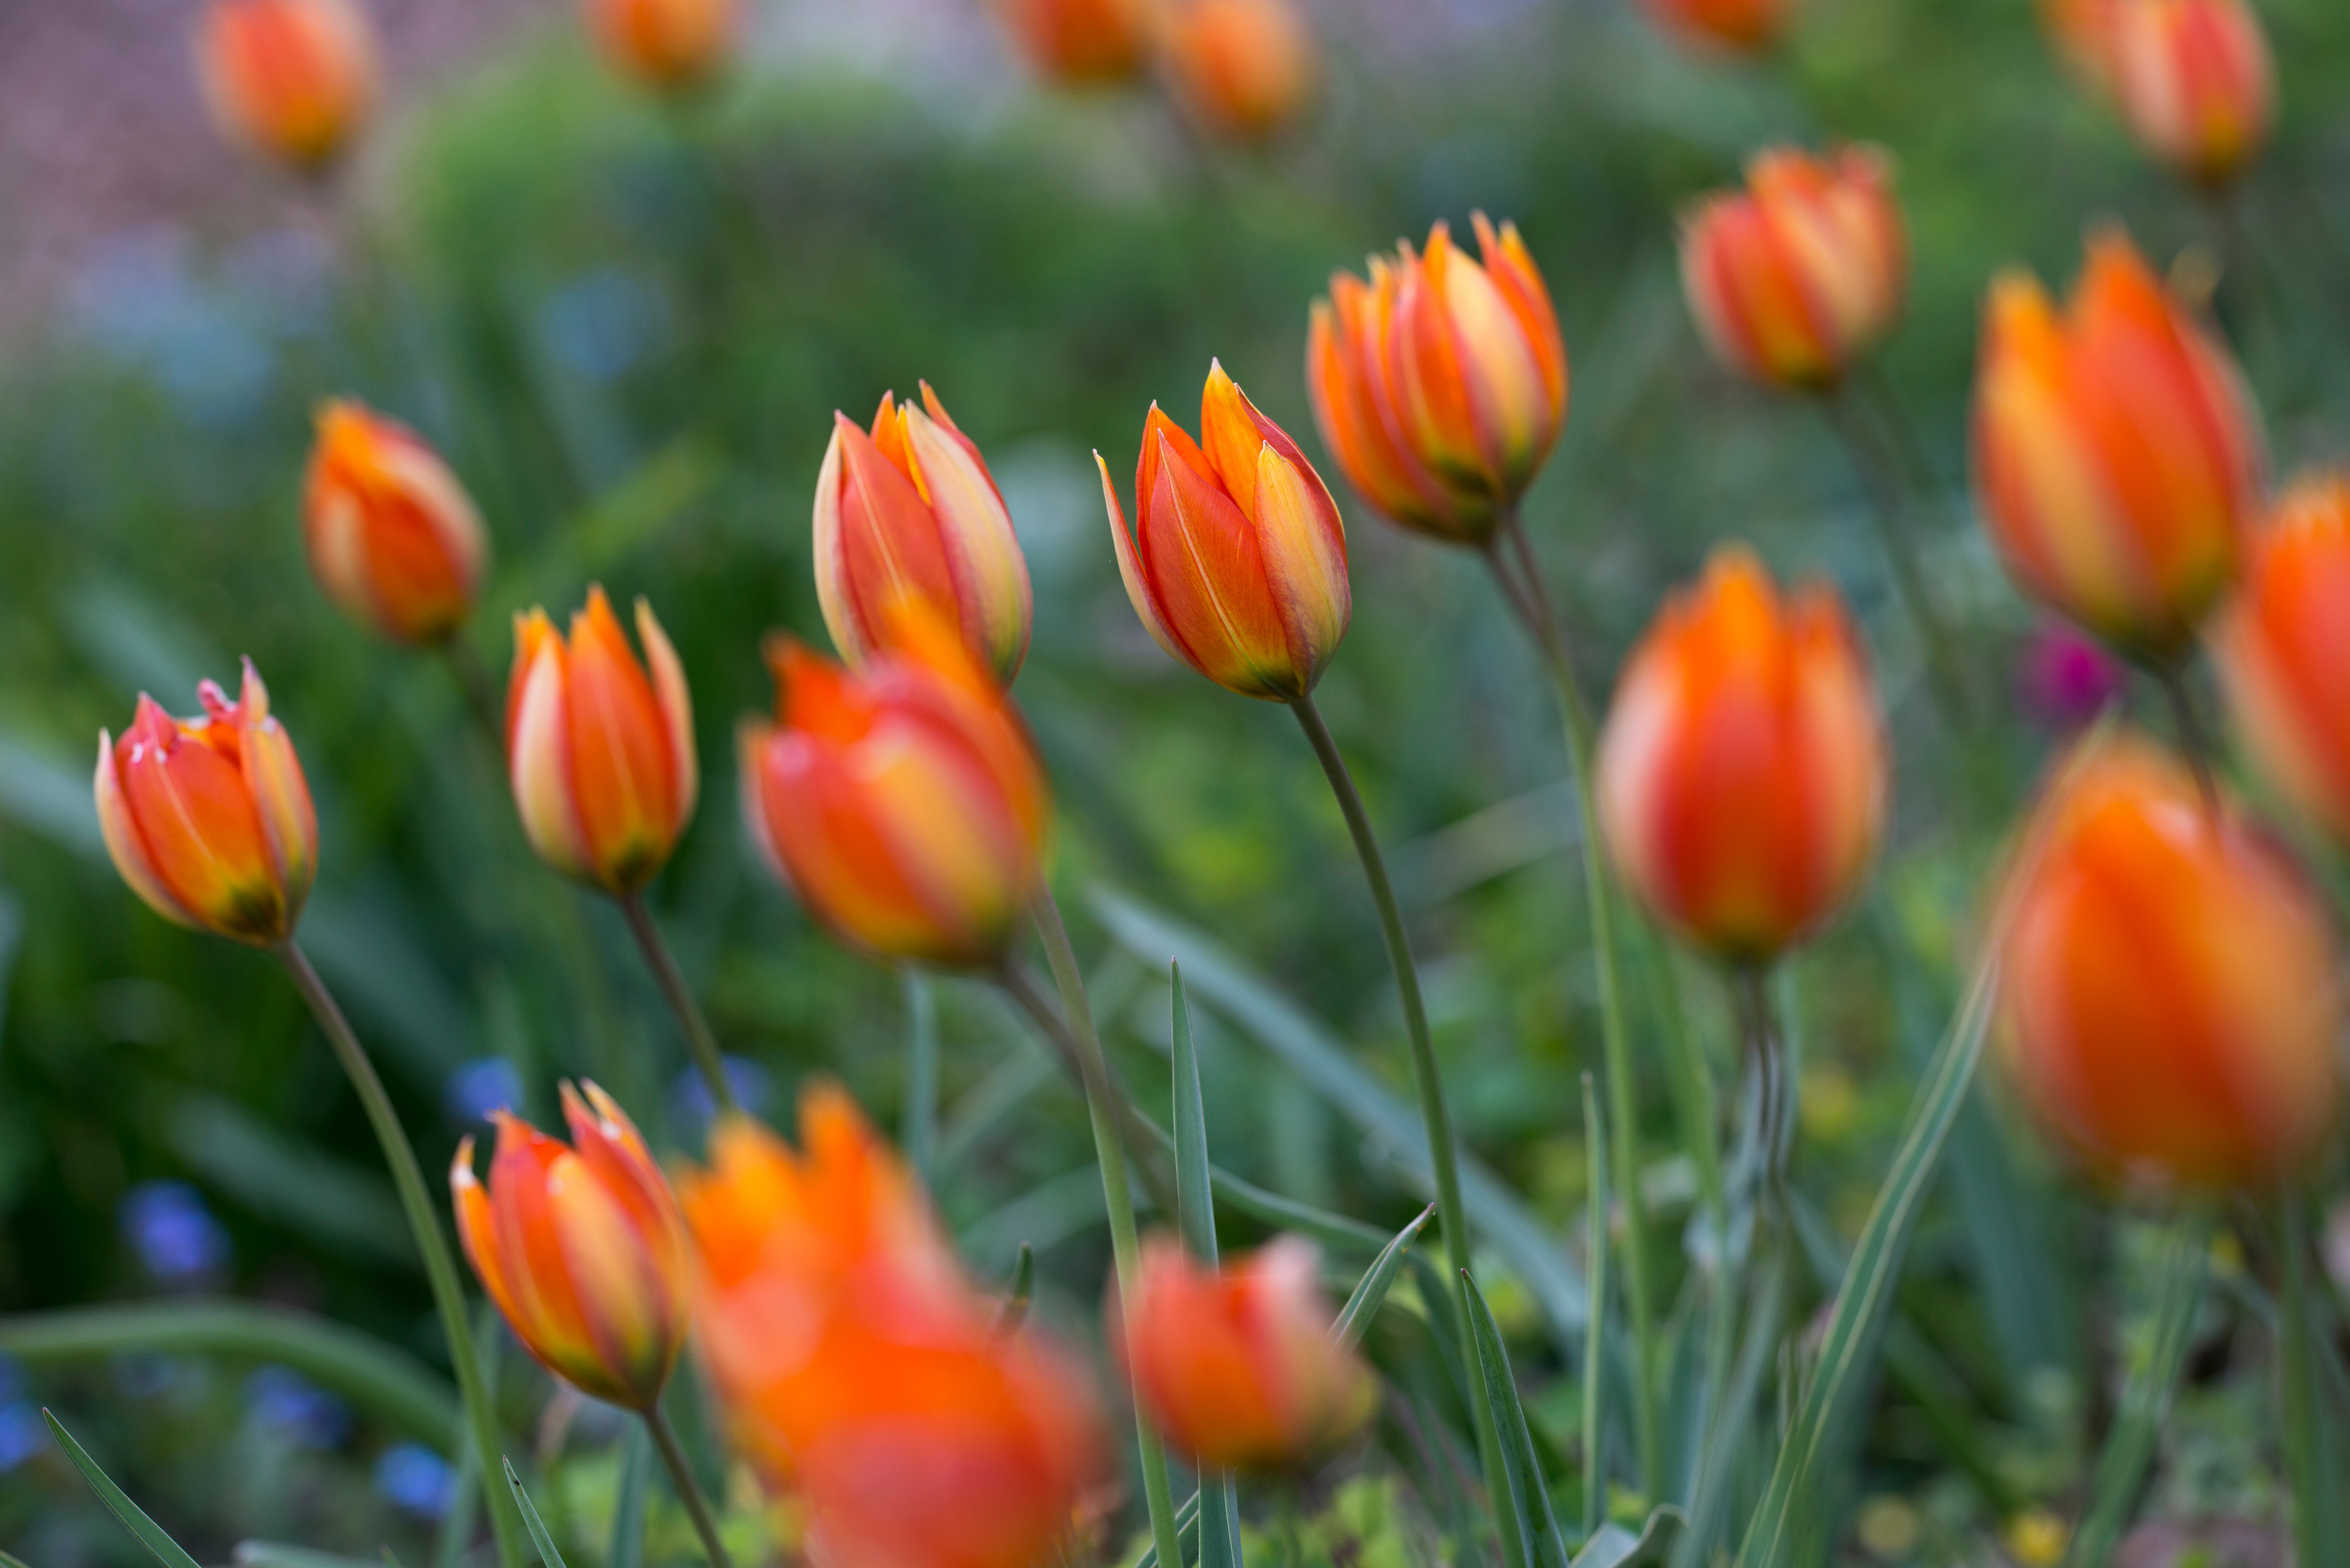 Orange tulips at the Old Rectory, Dorset